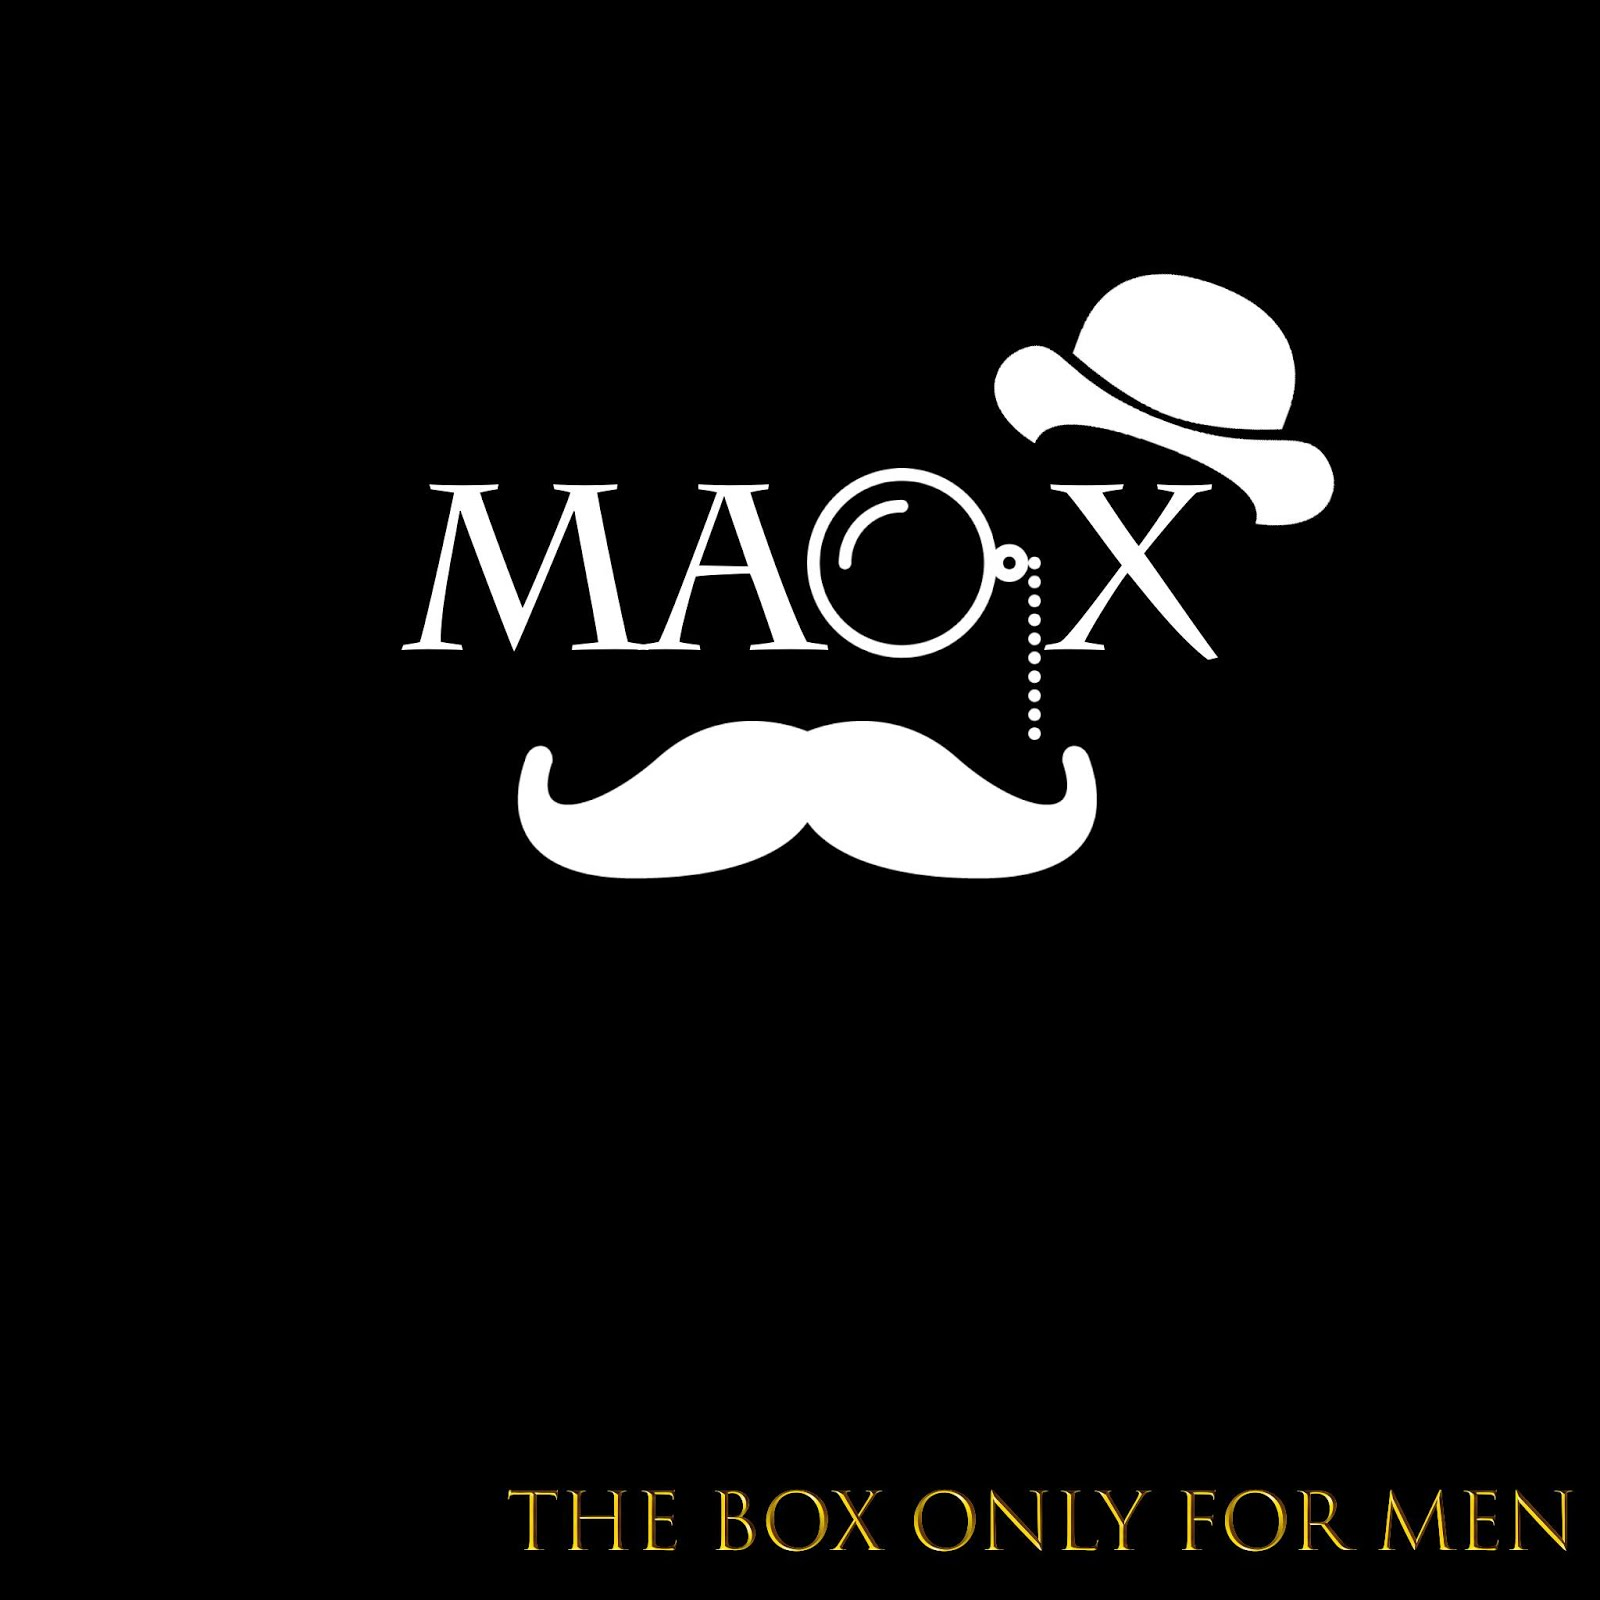 MAOX the Box only for MEN